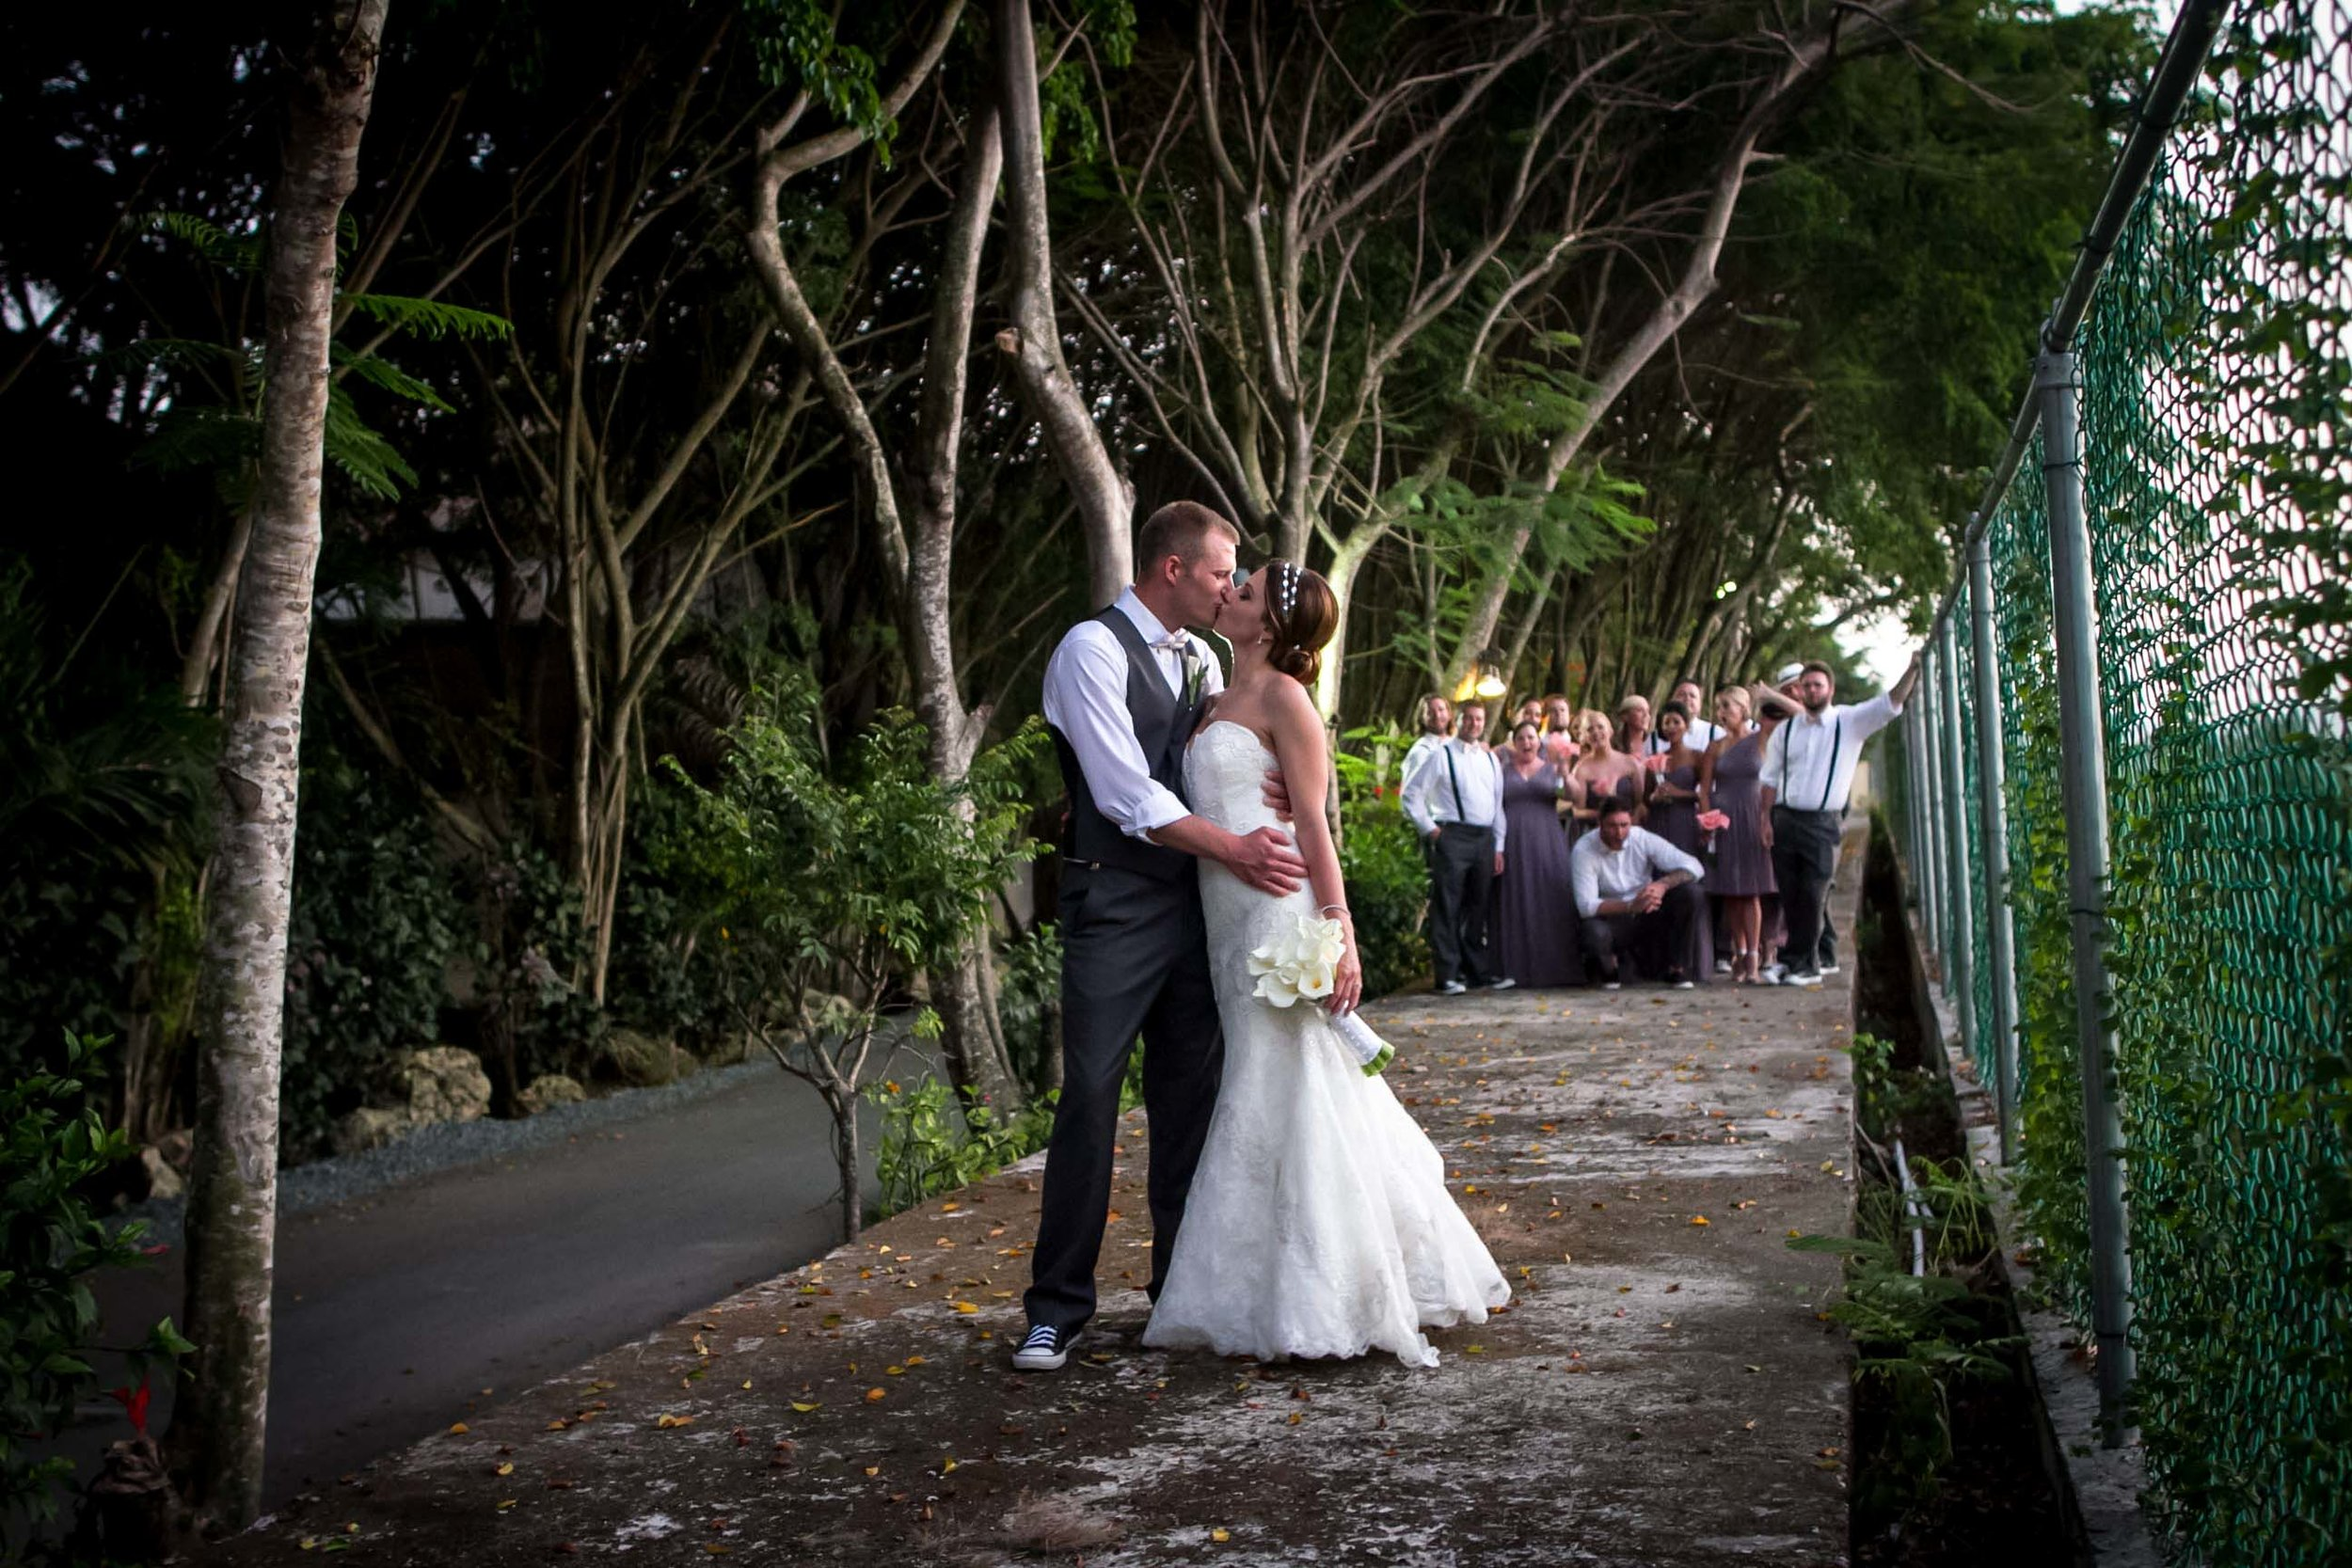 Best of the knot destination wedding mexico dominican republic hawaii -14.jpg